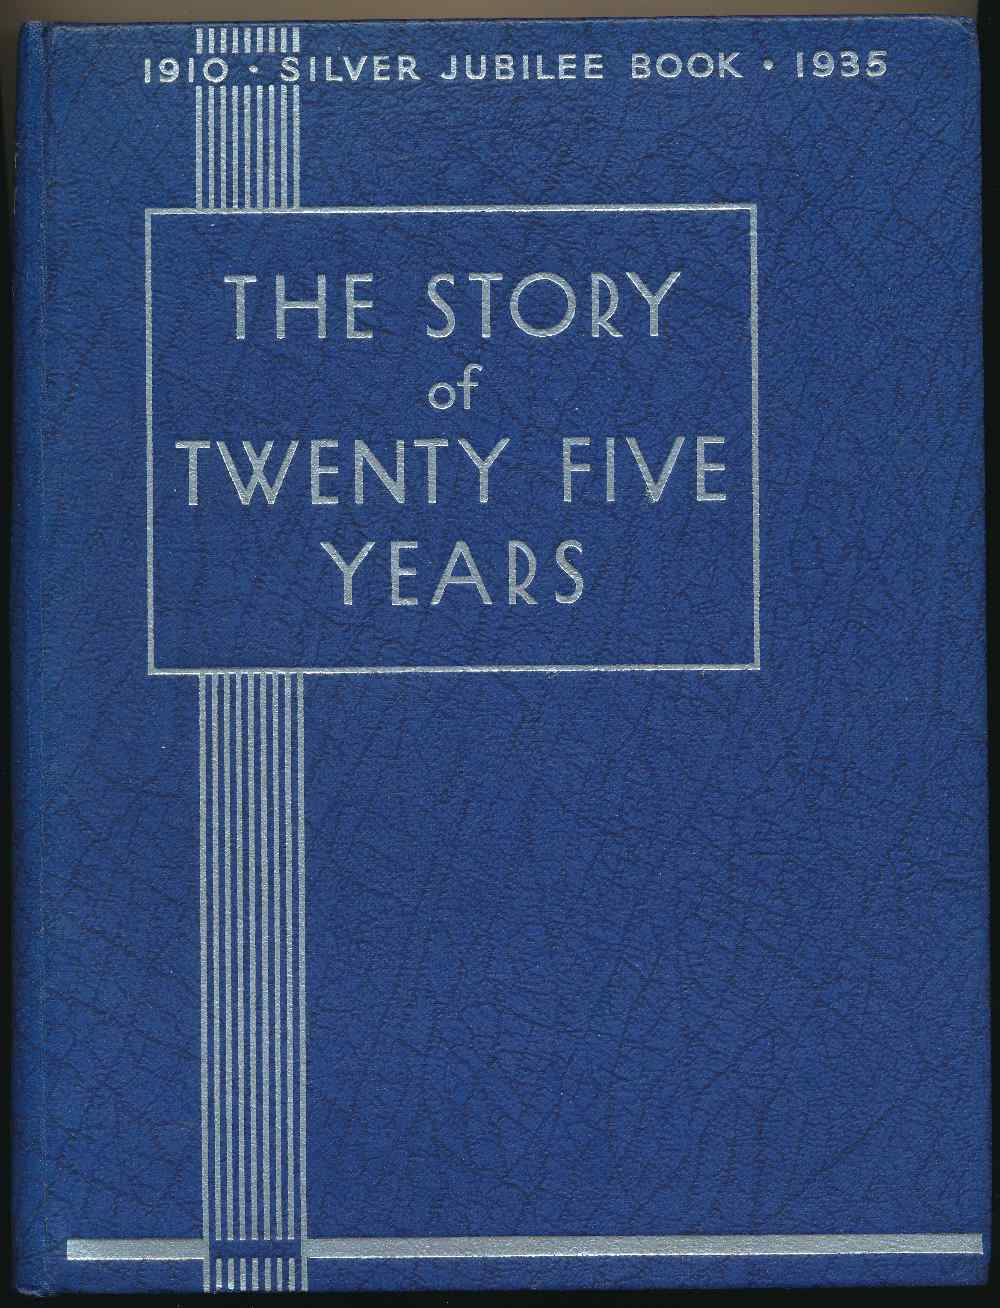 The story of twenty-five years : celebrating the Royal Silver Jubilee, 1910-1935